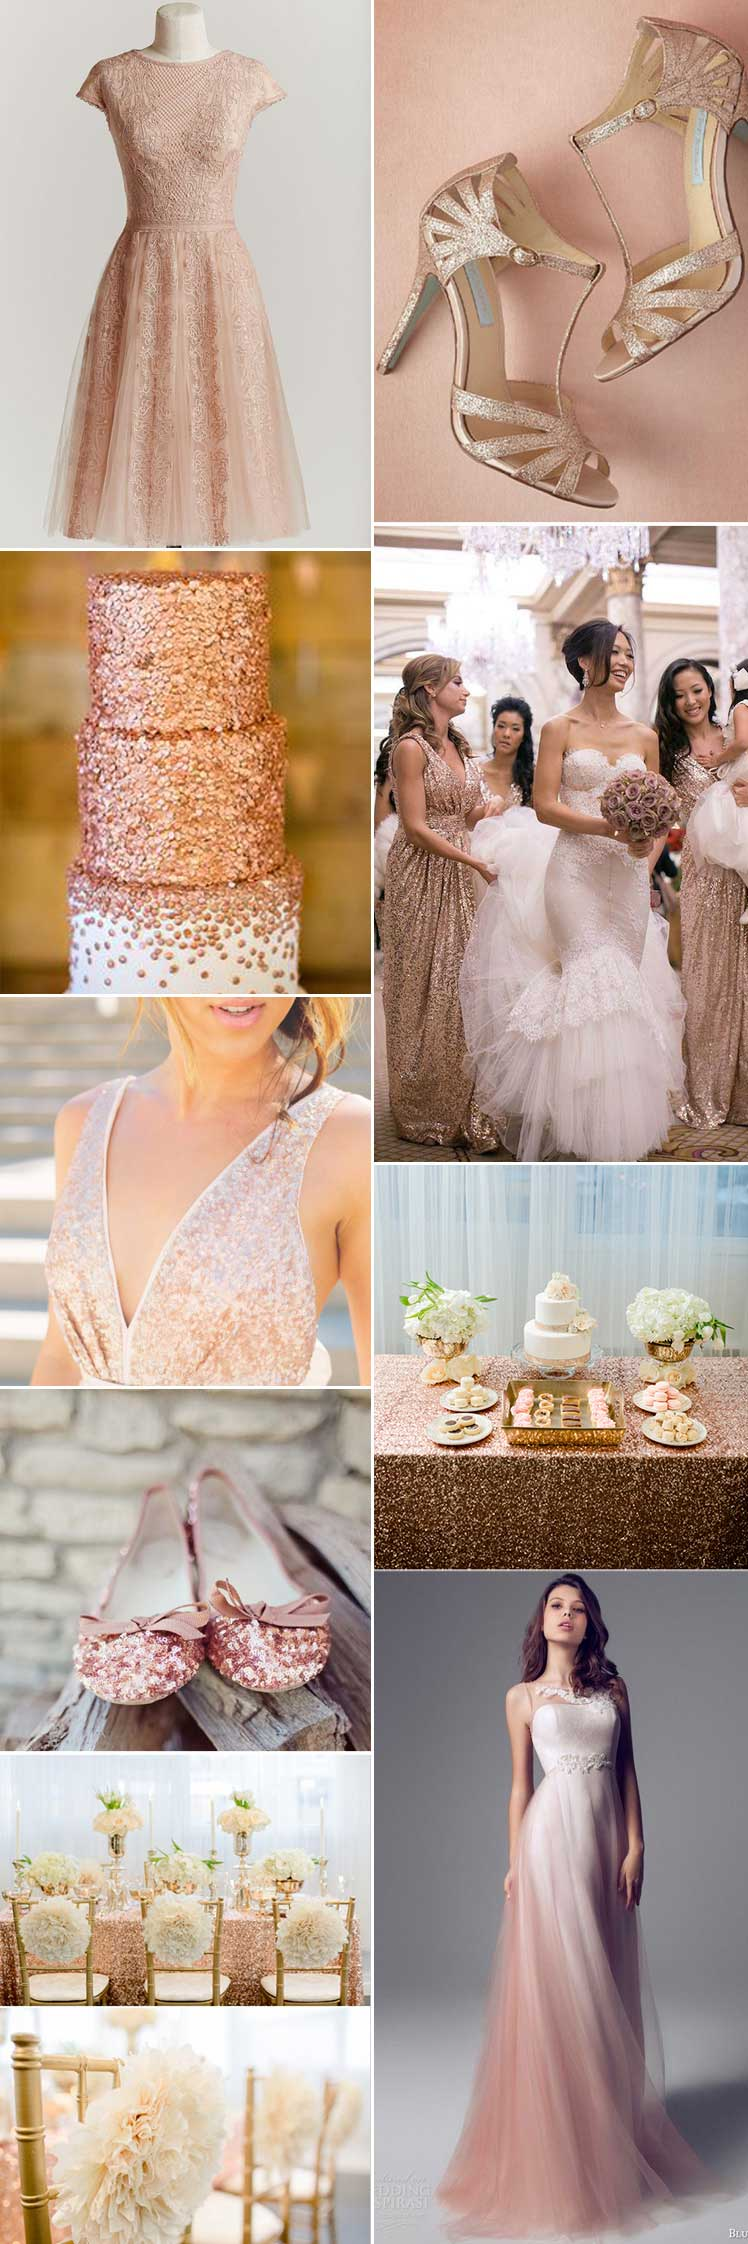 Inspiration for a metallic rose gold wedding day